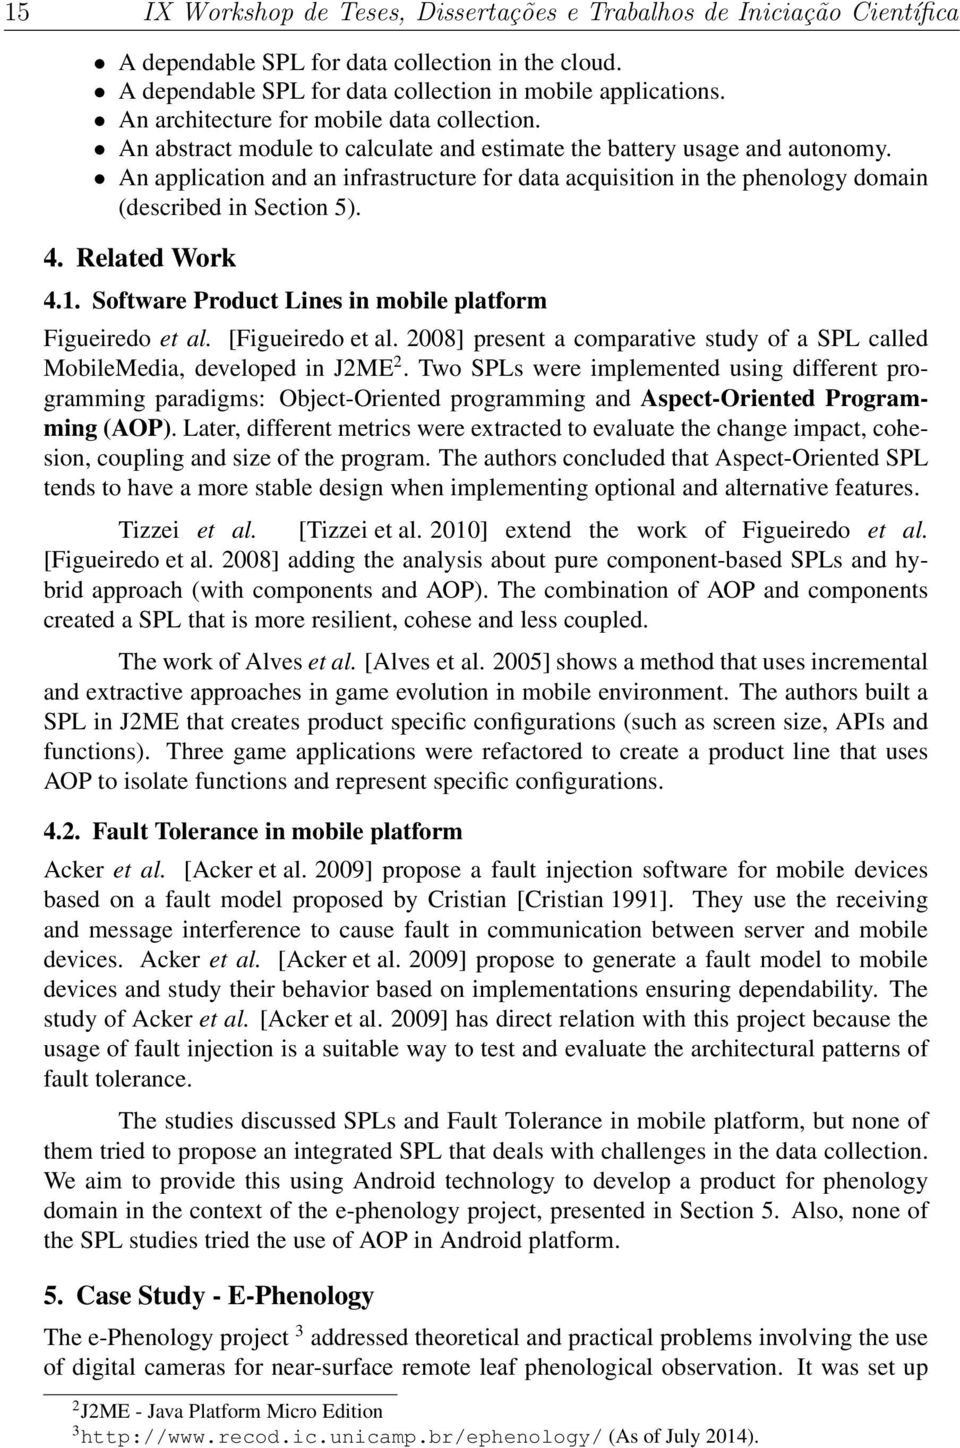 An application and an infrastructure for data acquisition in the phenology domain (described in Section 5). 4. Related Work 4.1. Software Product Lines in mobile platform Figueiredo et al.